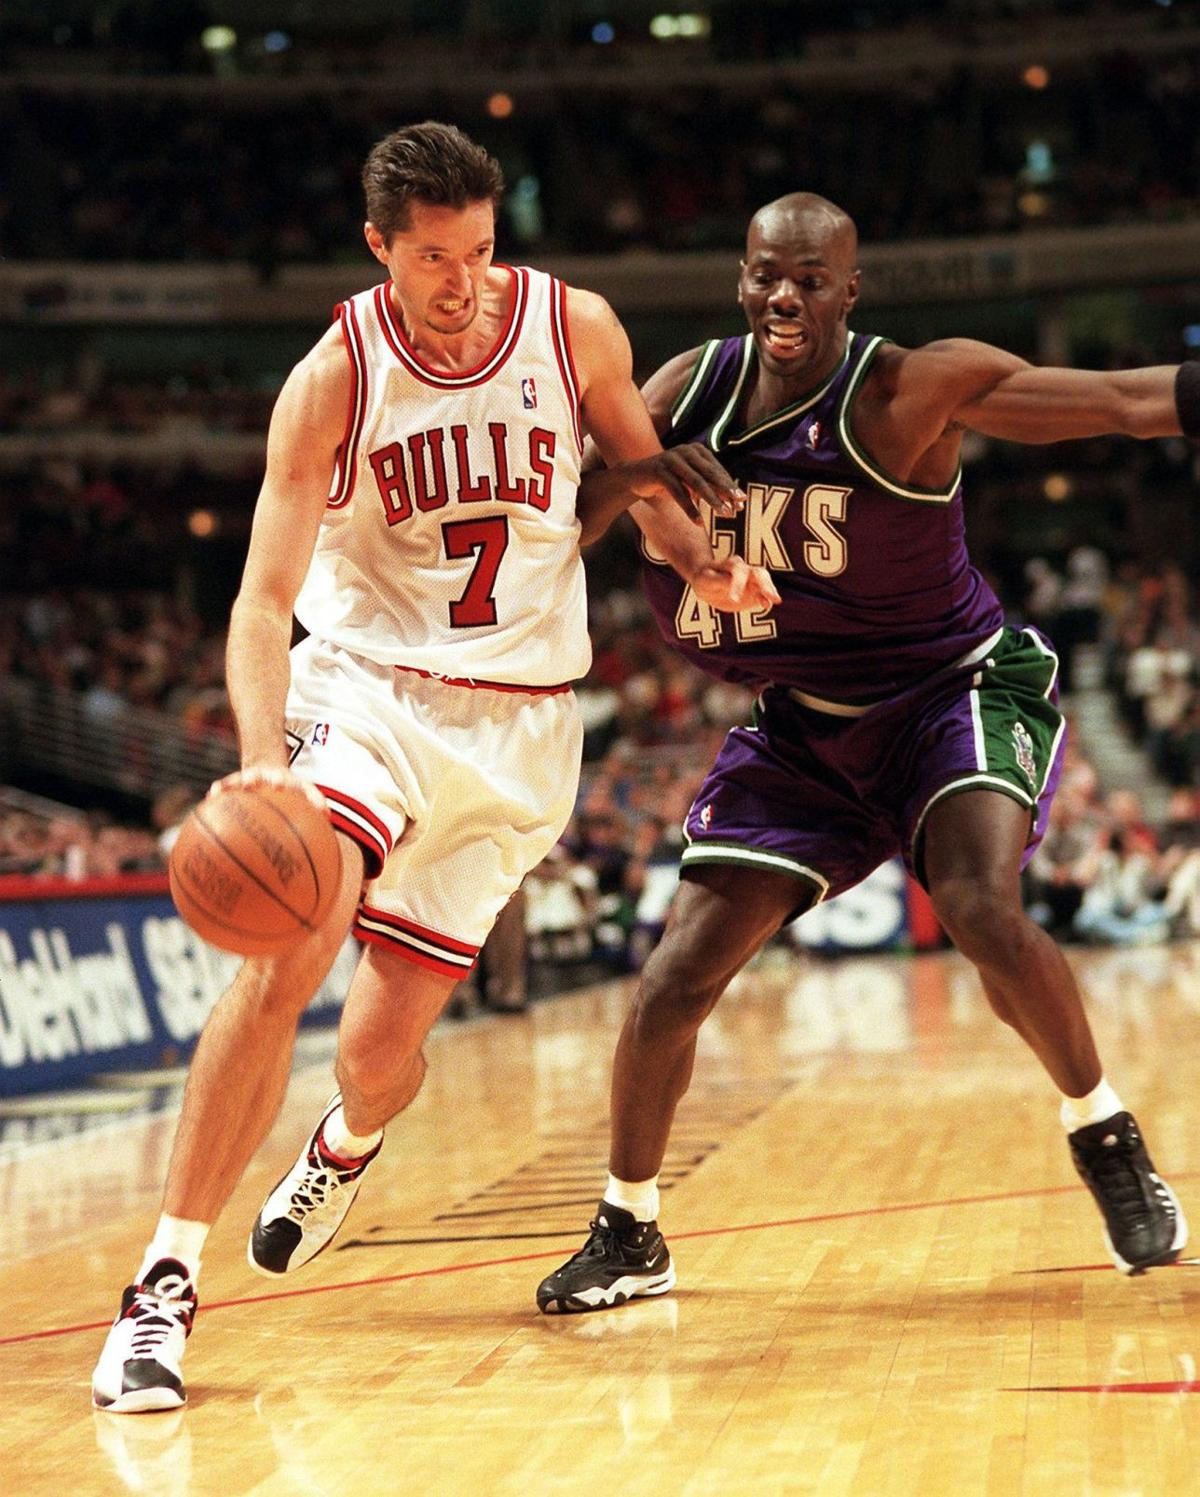 Bulls forward Toni Kukoc drives to the basket against the Bucks' Tyrone Hill at the United Center on Feb. 23, 1999.